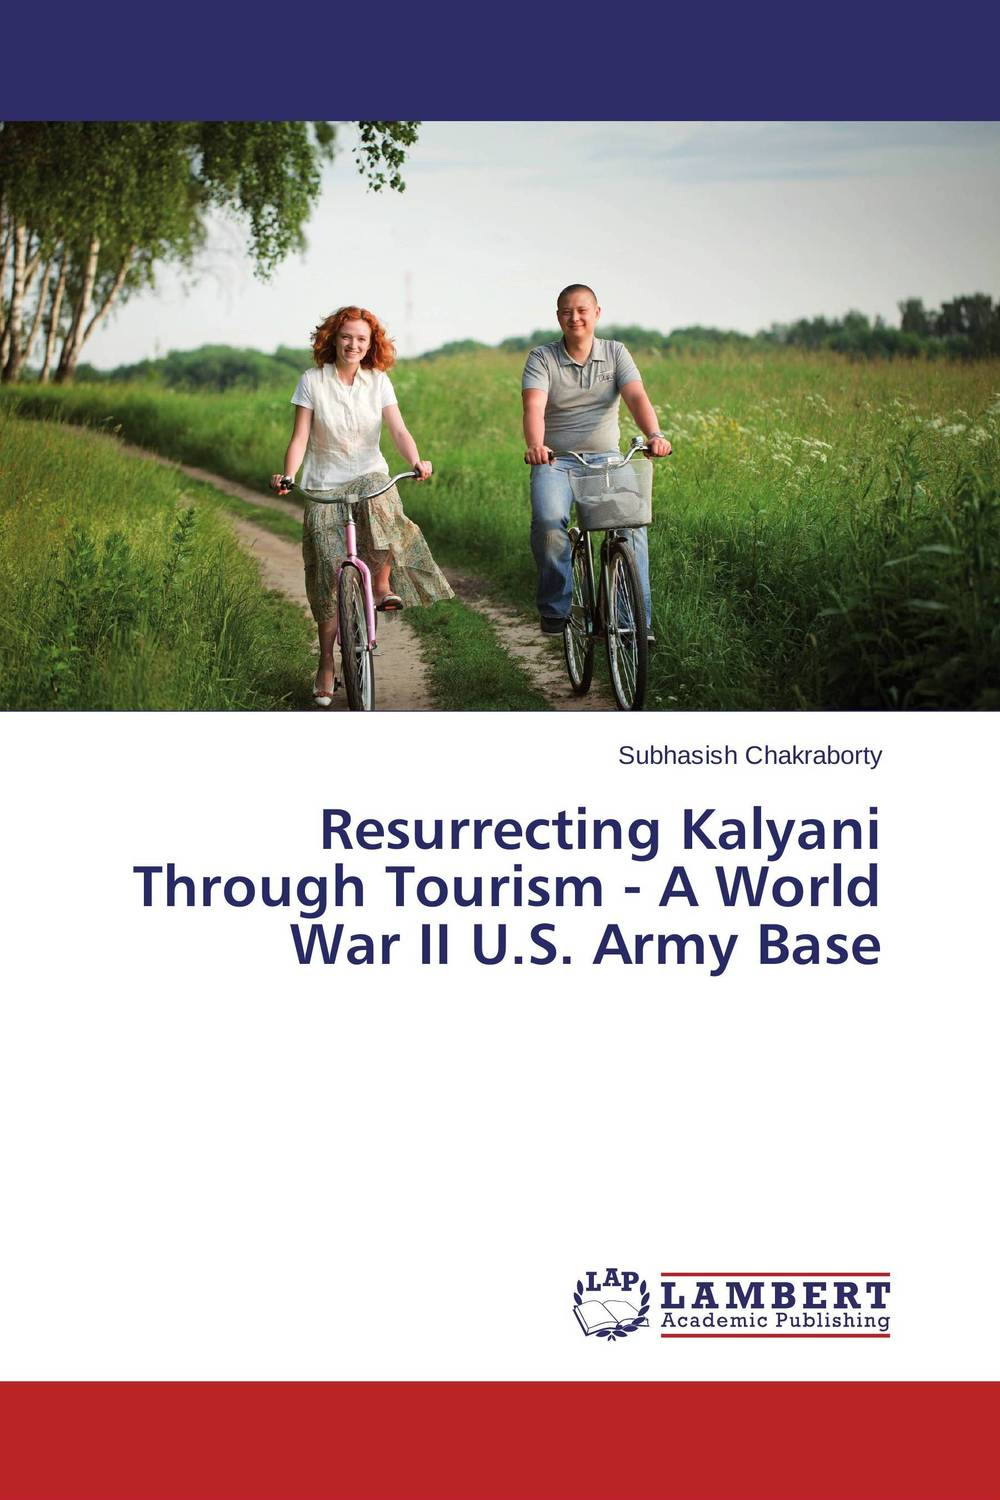 Resurrecting Kalyani Through Tourism - A World War II U.S. Army Base